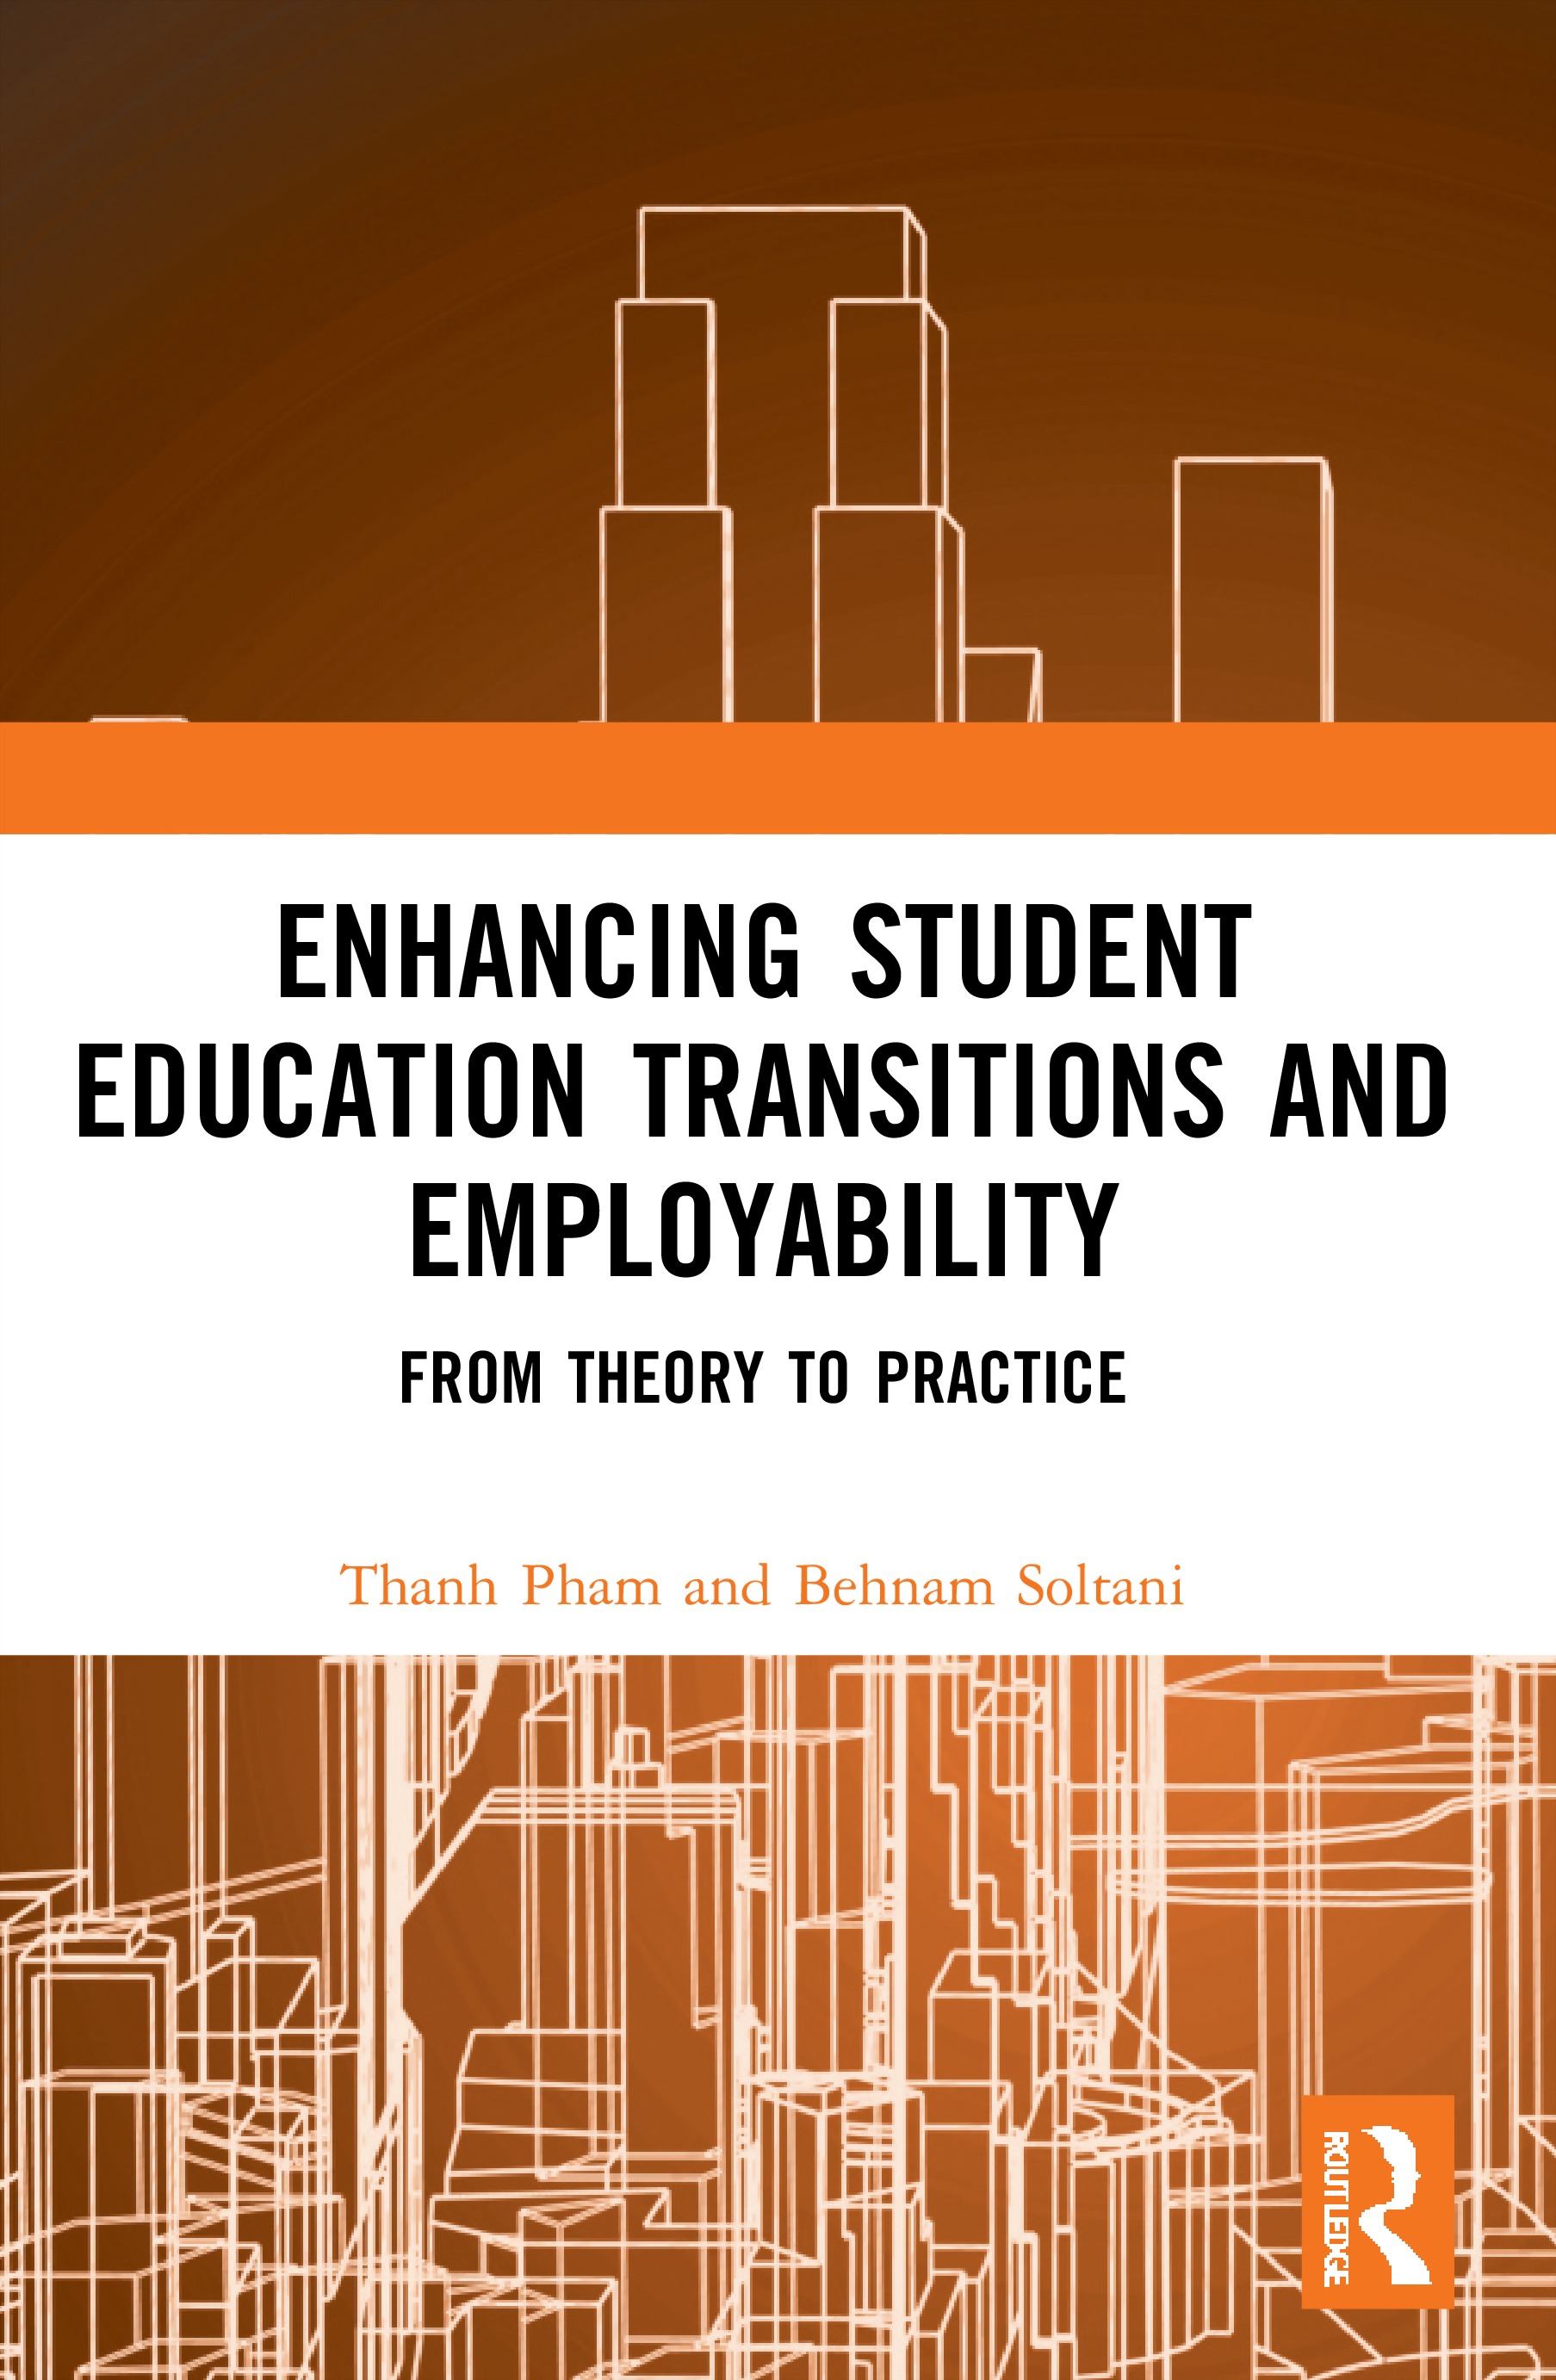 Enhancing Student Education Transitions and Employability